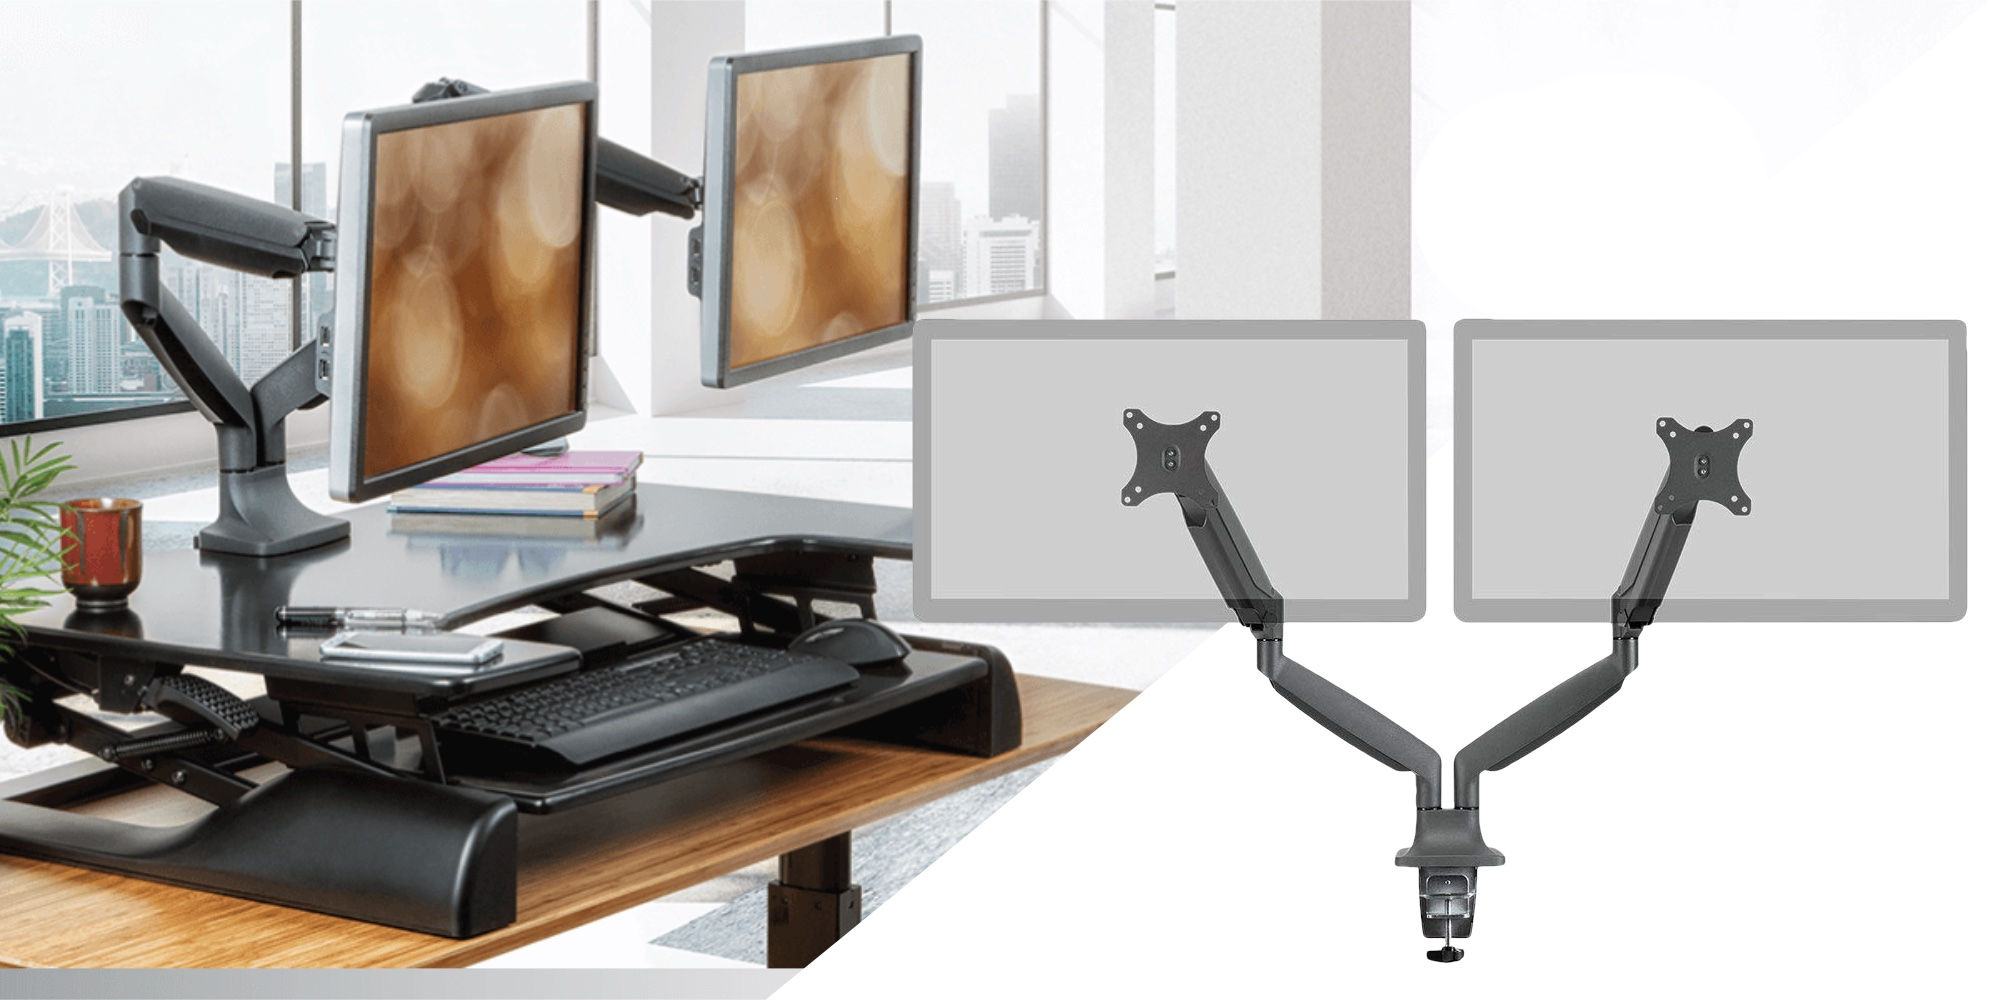 Monoprice's $79 Adjustable Dual Monitor Mount reclaims used desk space (Save 20%)